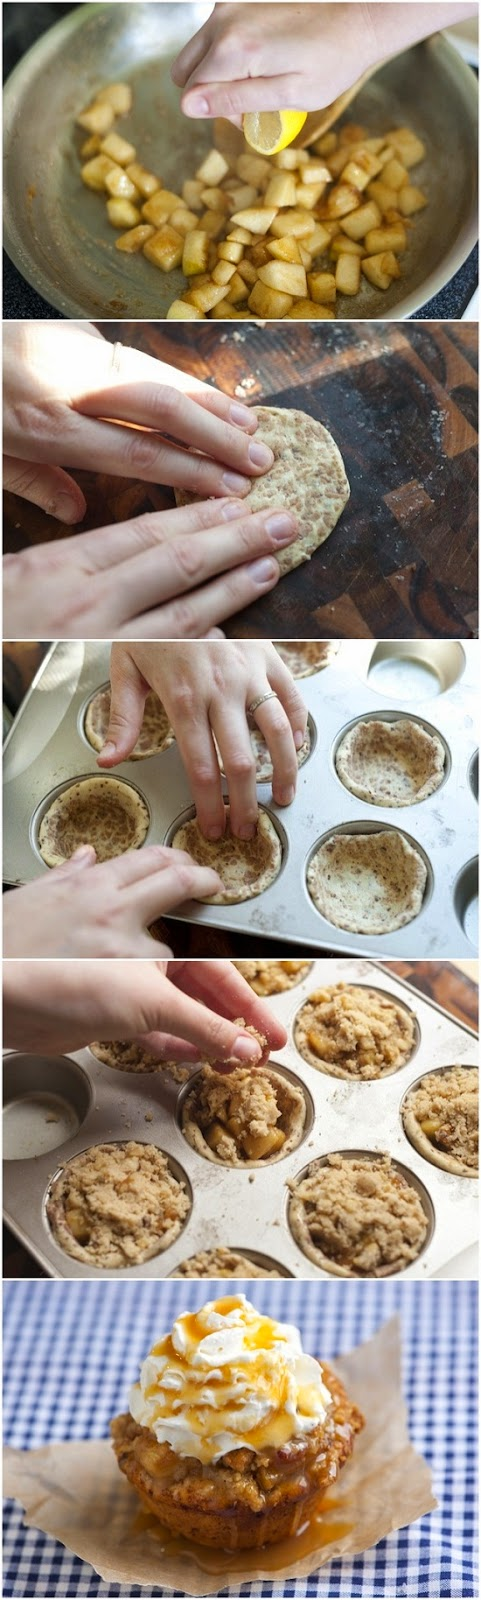 How To Make Apple Pie Cupcakes